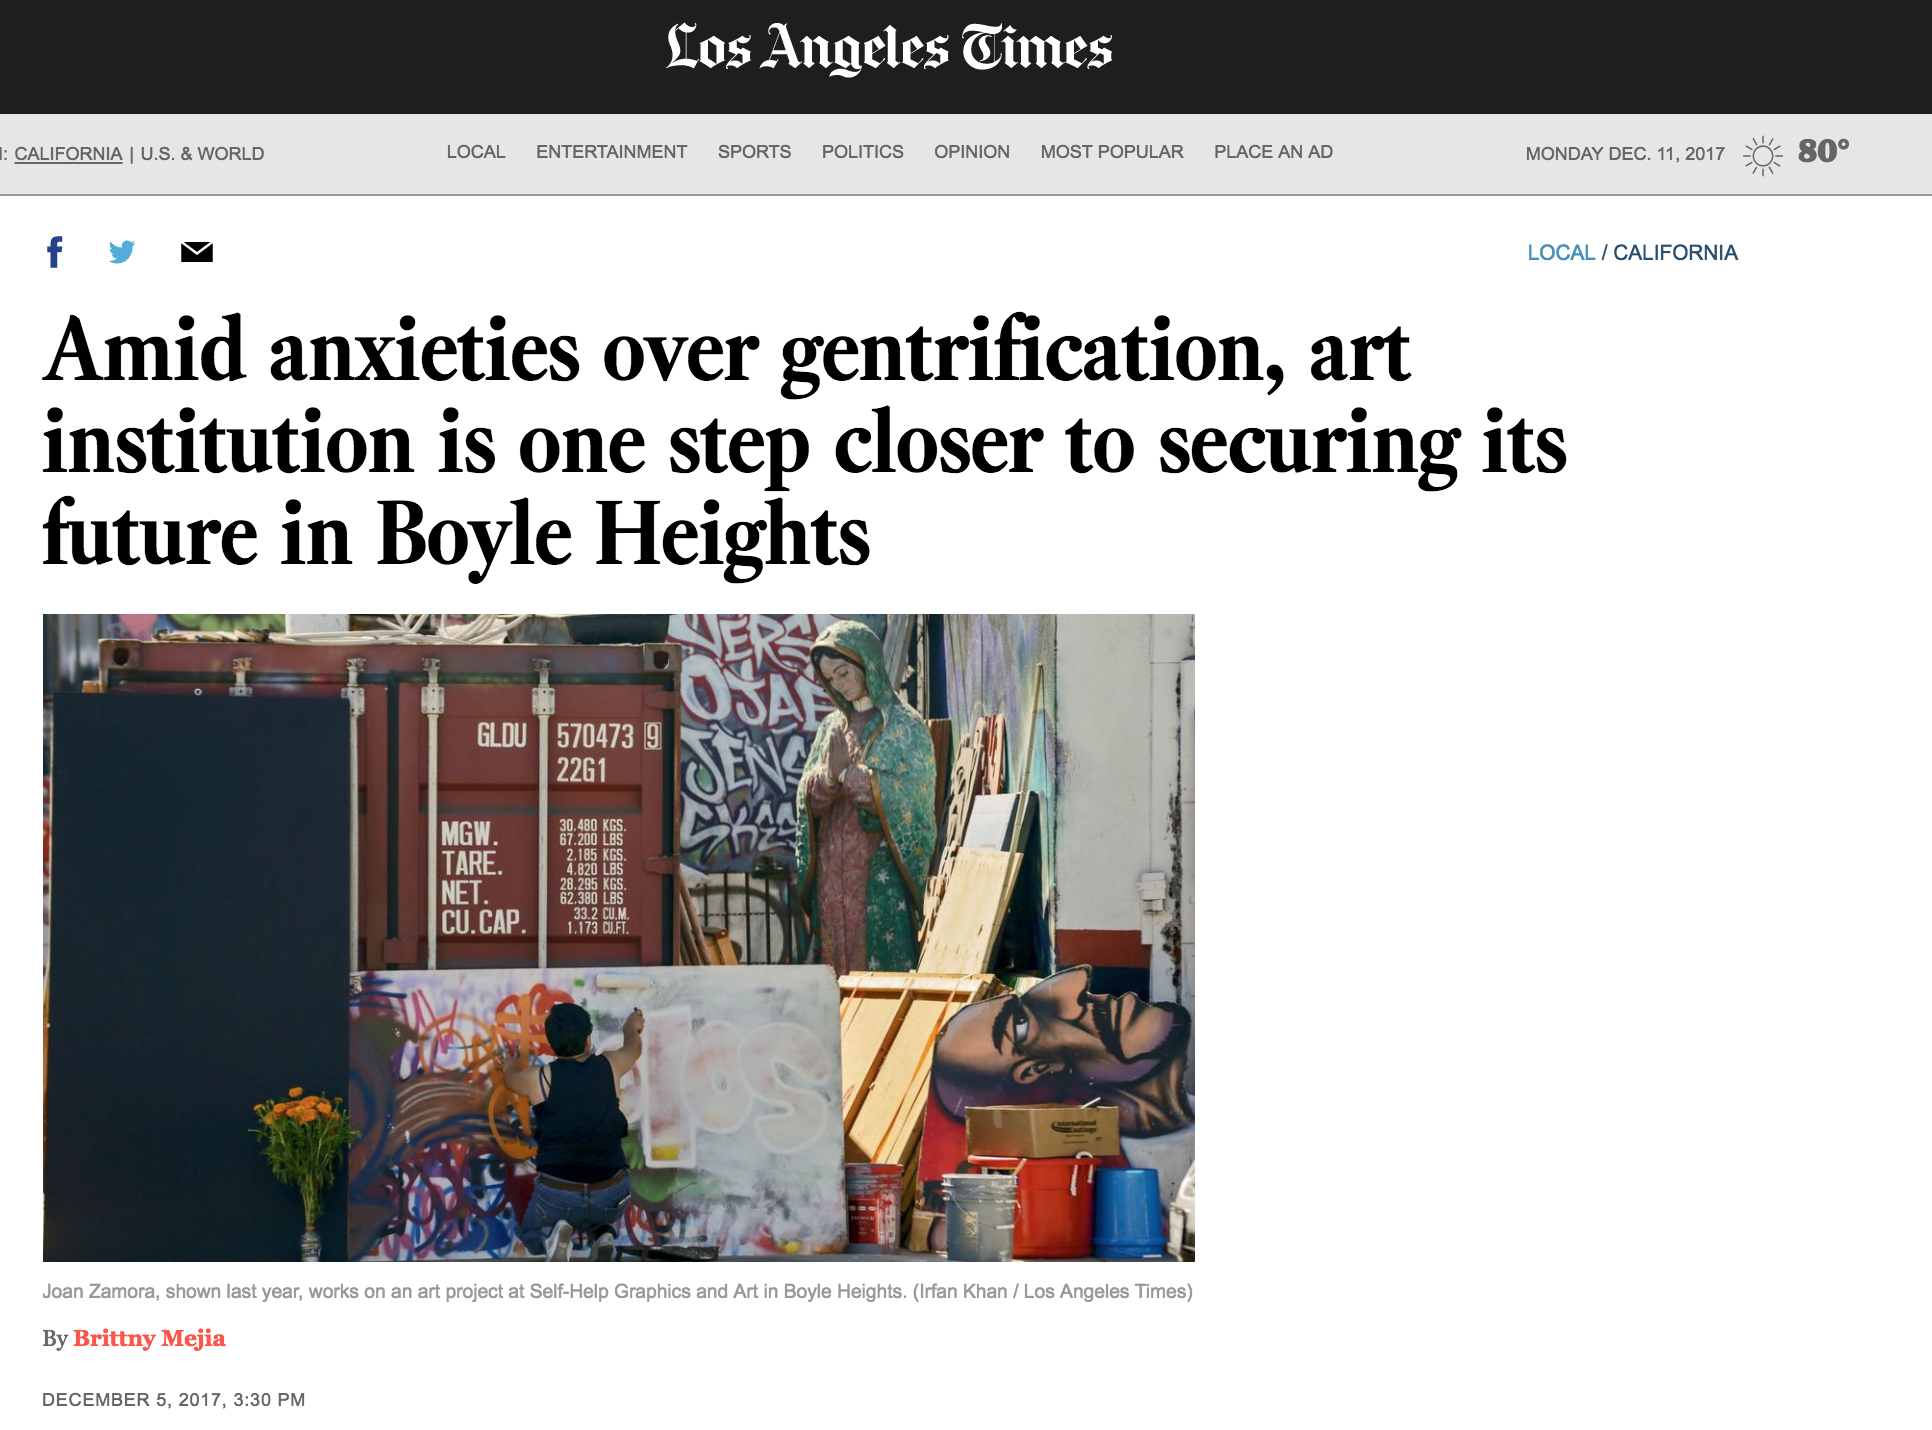 Amid concerns about displacement that at one point roped it into an ongoing battle over gentrification, a venerable Eastside art institution got closer to securing its future through a planned purchase of its longtime headquarters in Boyle Heights.  The Los Angeles City Council voted Tuesday to approve an $825,000 funding commitment proposed by Councilman Jose Huizar to help Self Help Graphics and Art purchase the property along East 1st Street...  continue reading